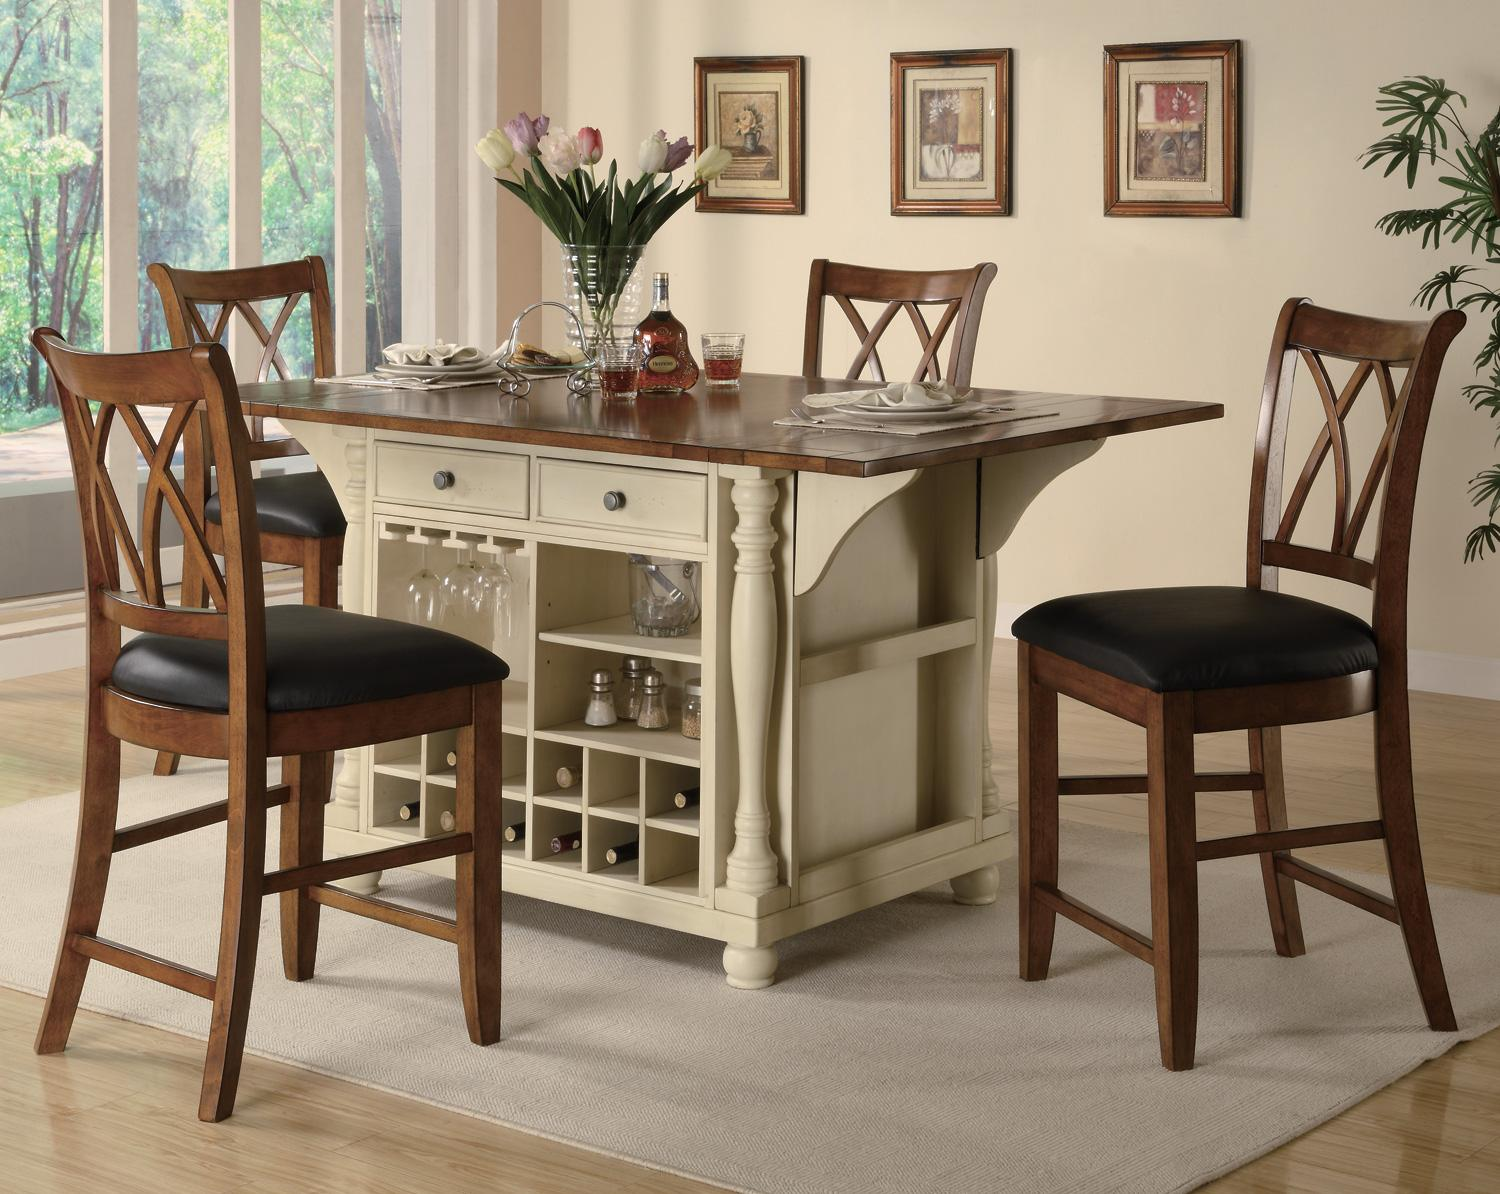 Dinette Sets| Kitchen Table and Furniture| Counter Height Stools ...